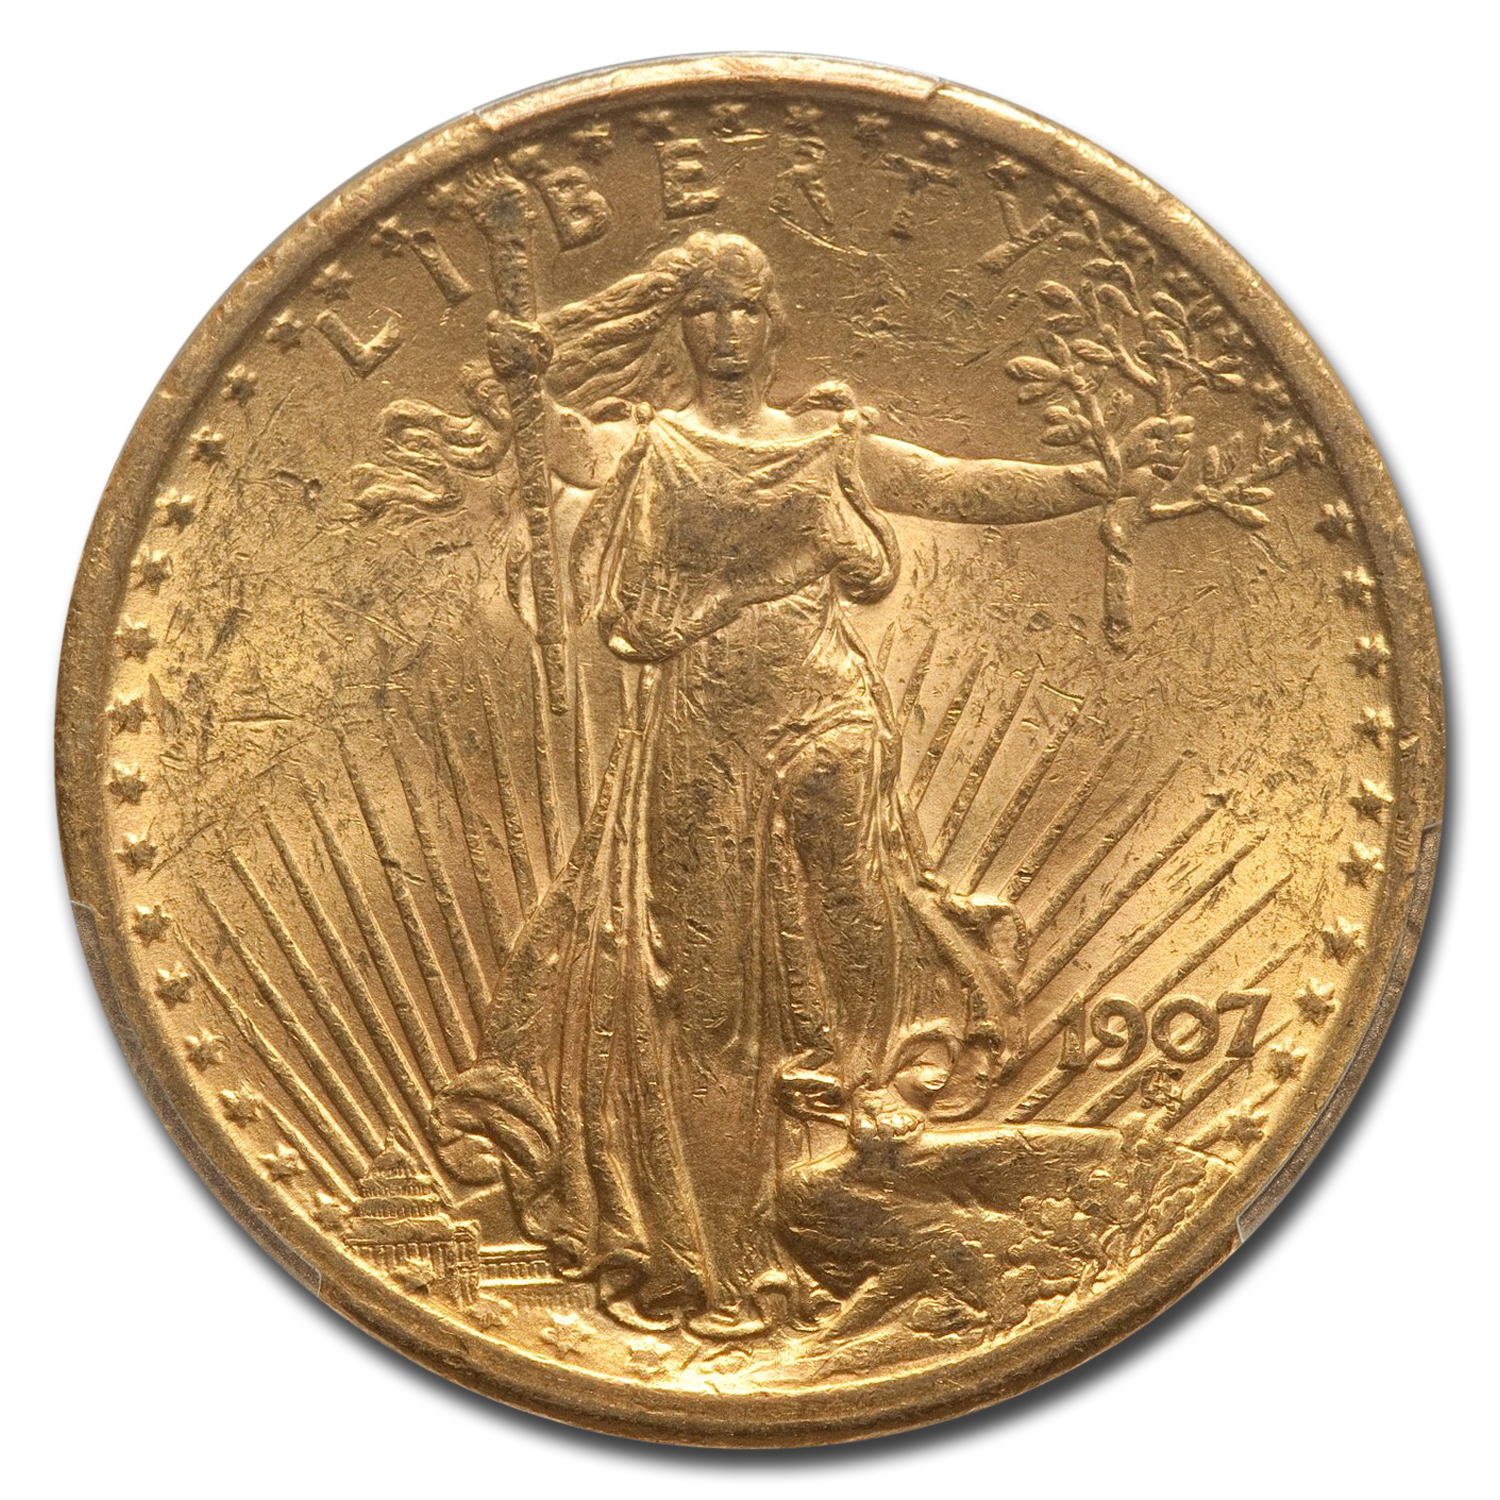 1907 $20 St. Gaudens Gold Double Eagle - MS-61 PCGS